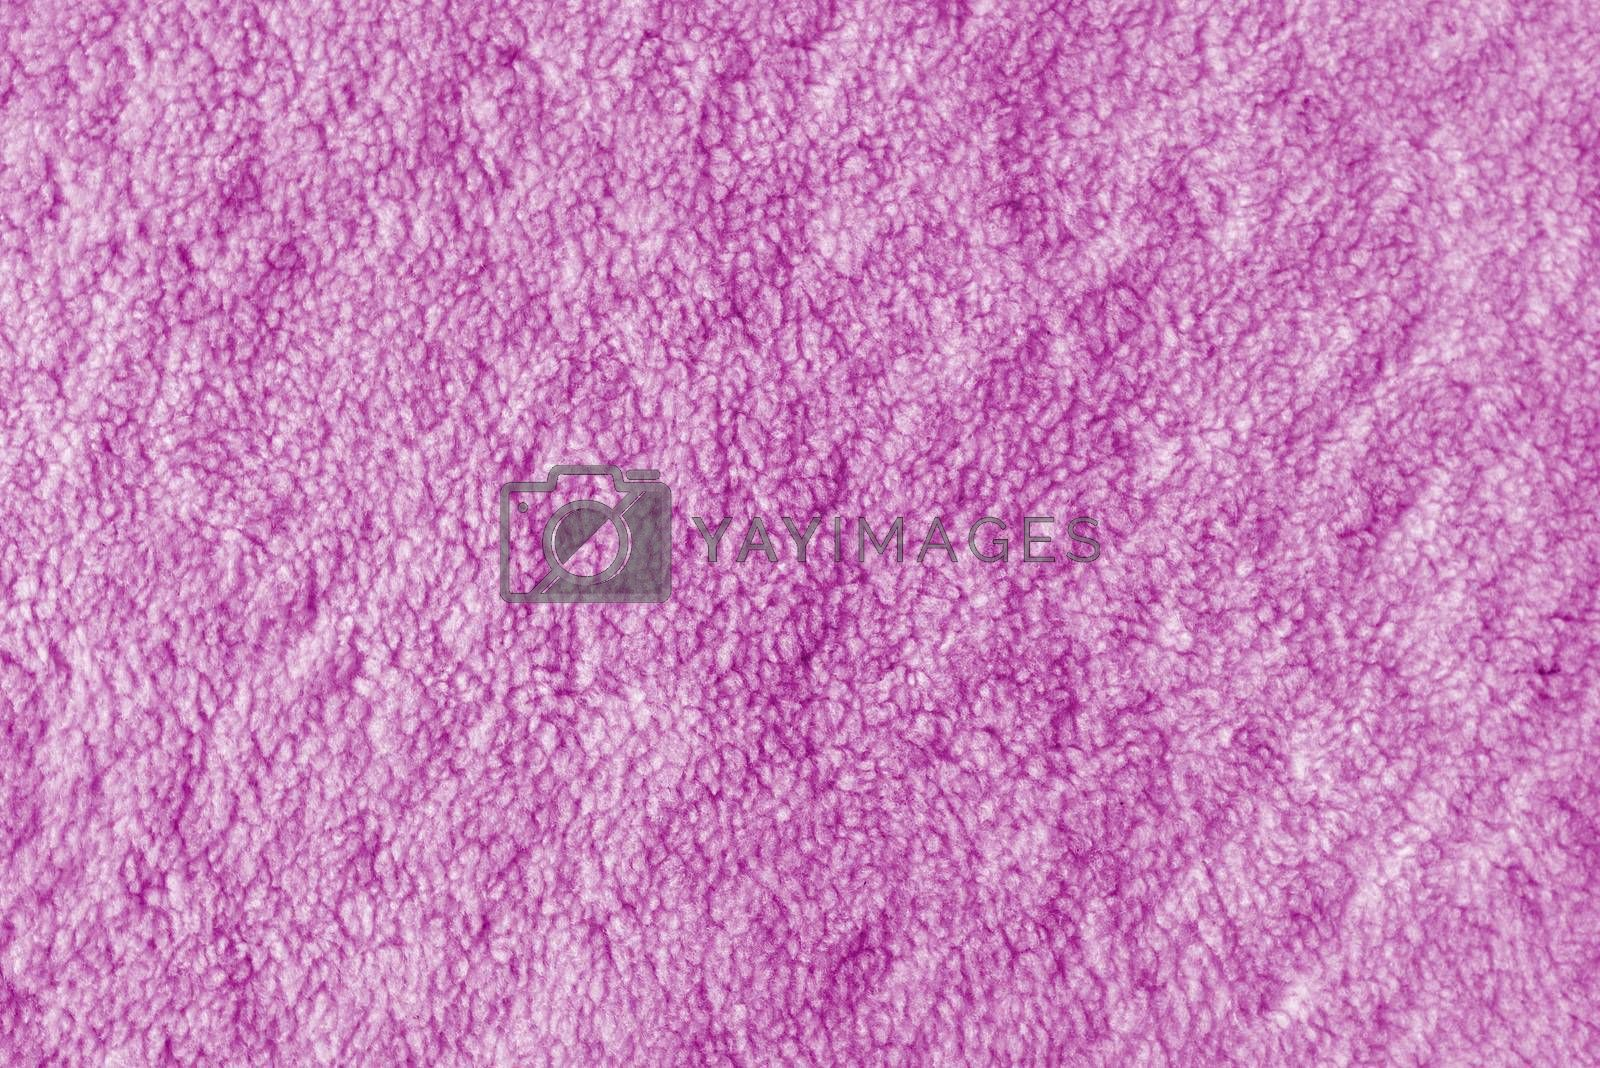 Pink towel texture, soft cloth material surface as background